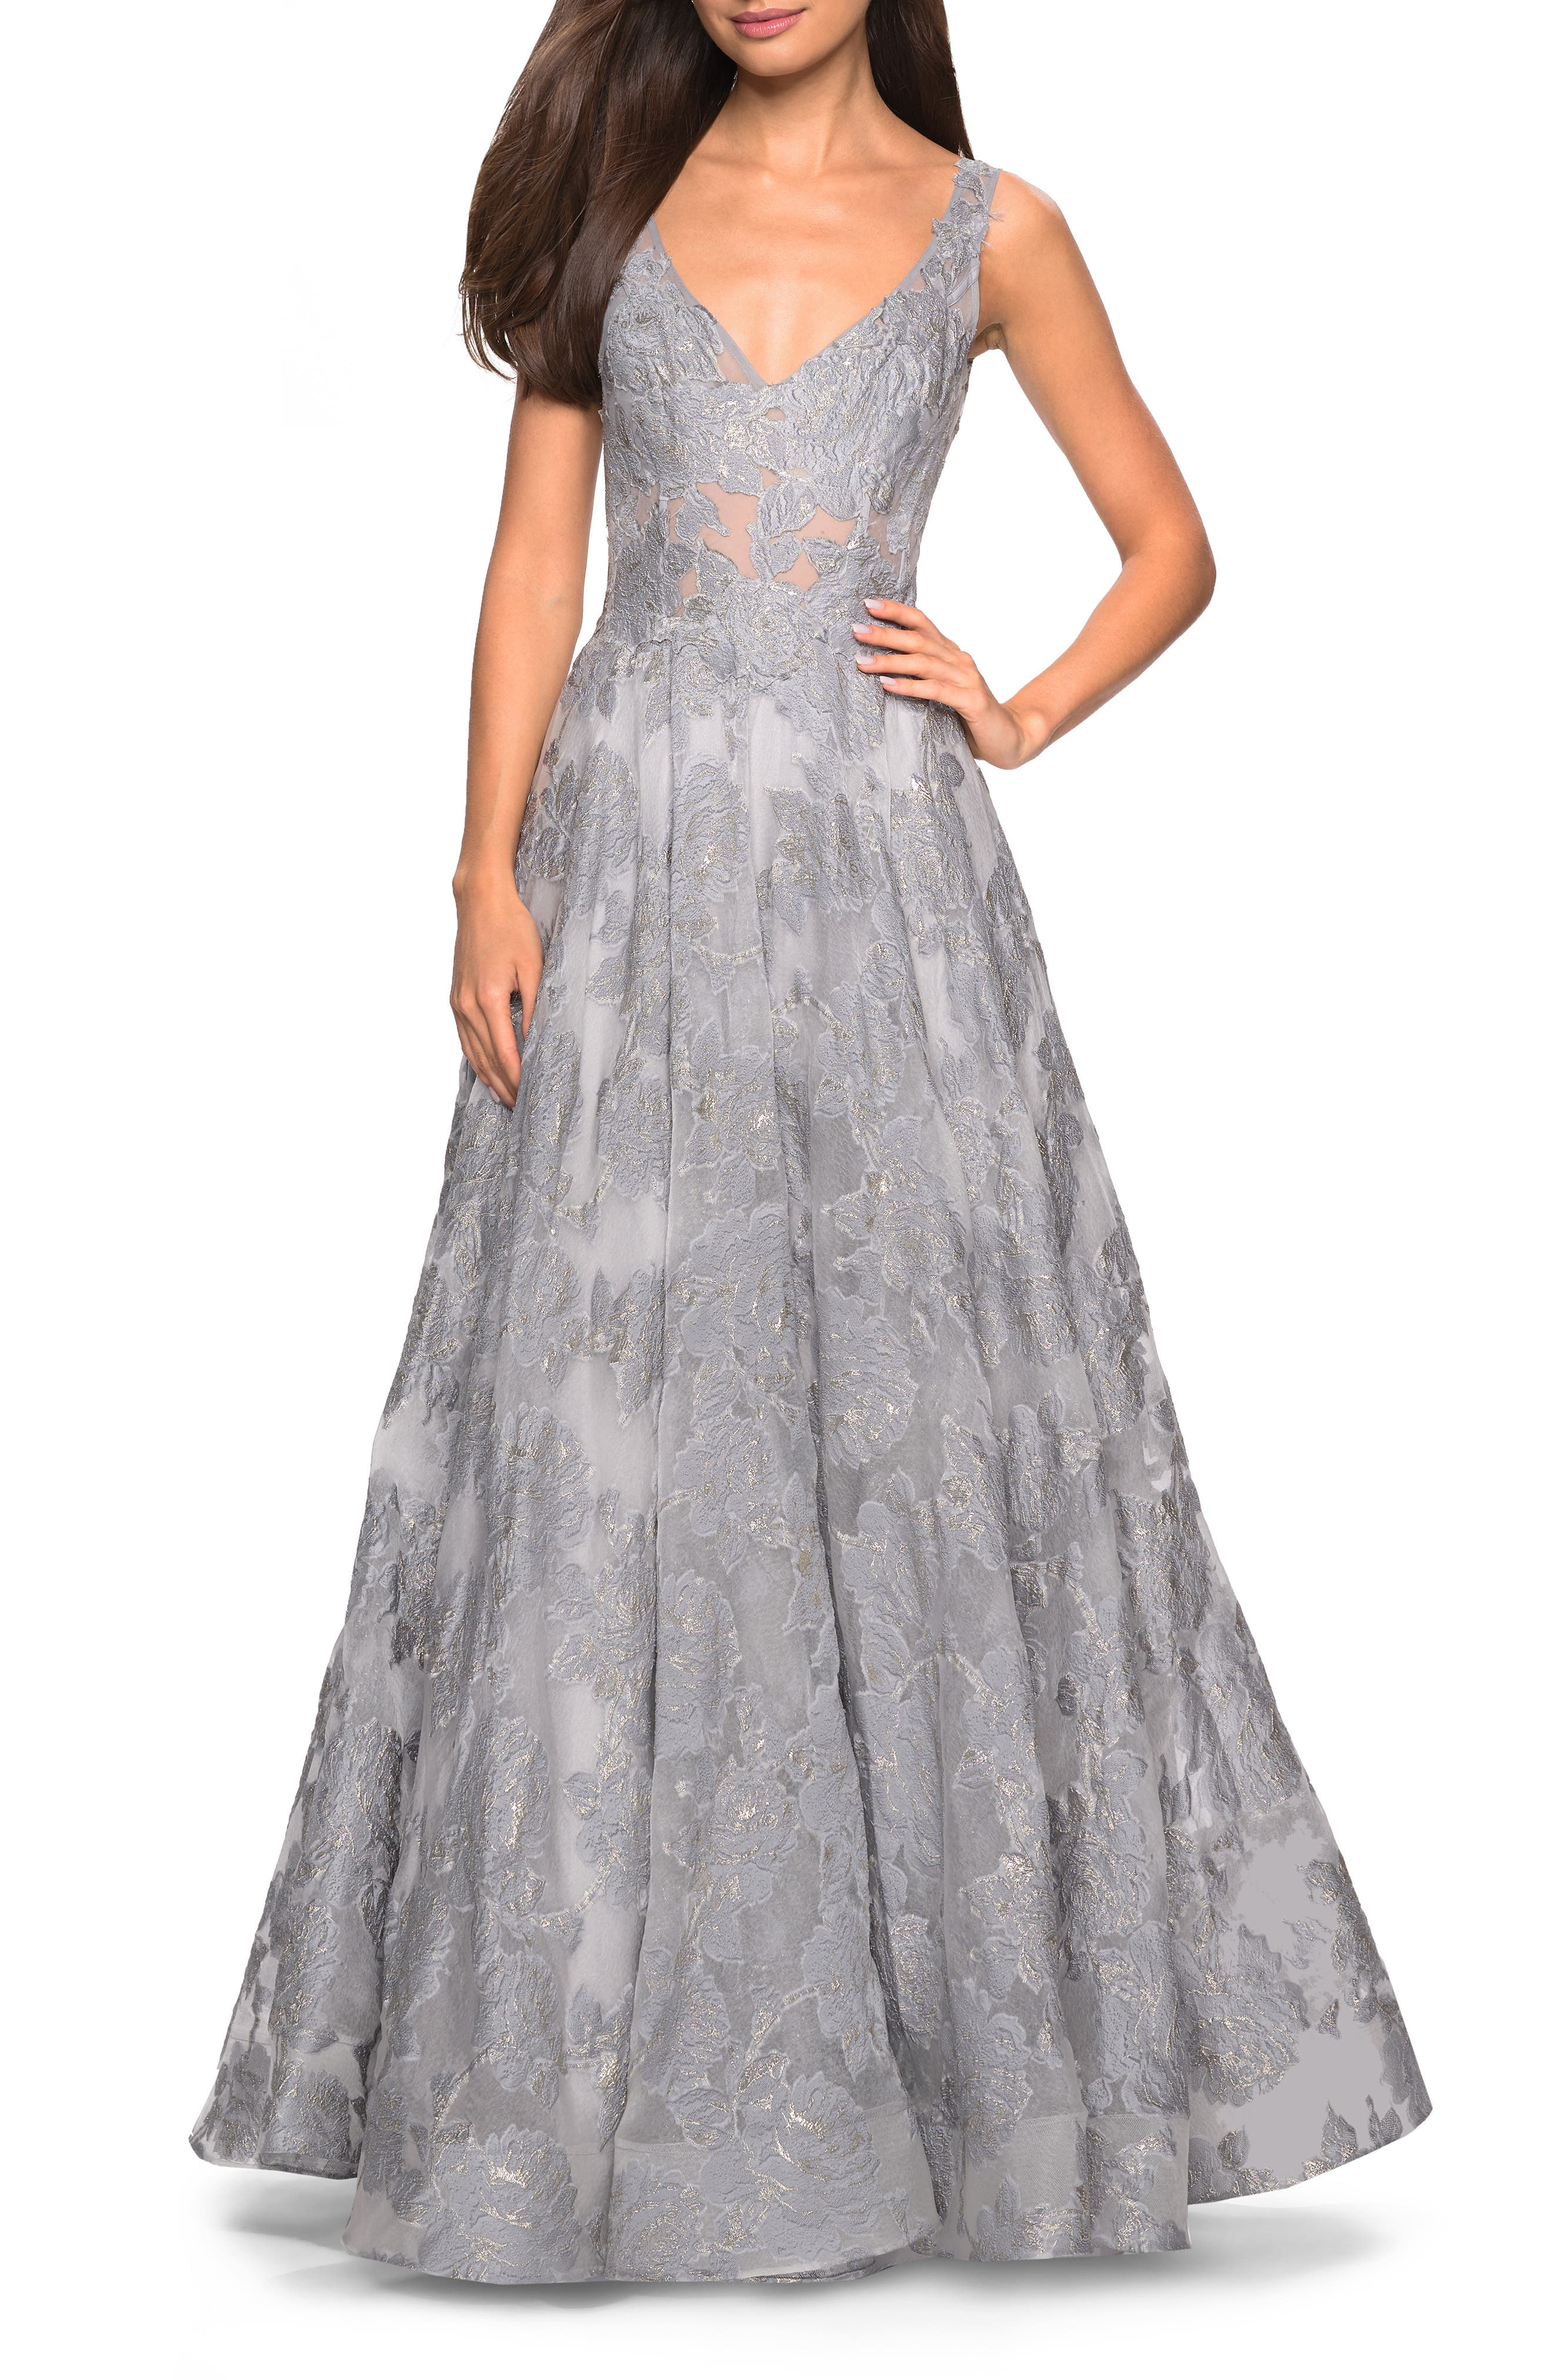 La Femme Lace A-Line Evening Dress, Grey